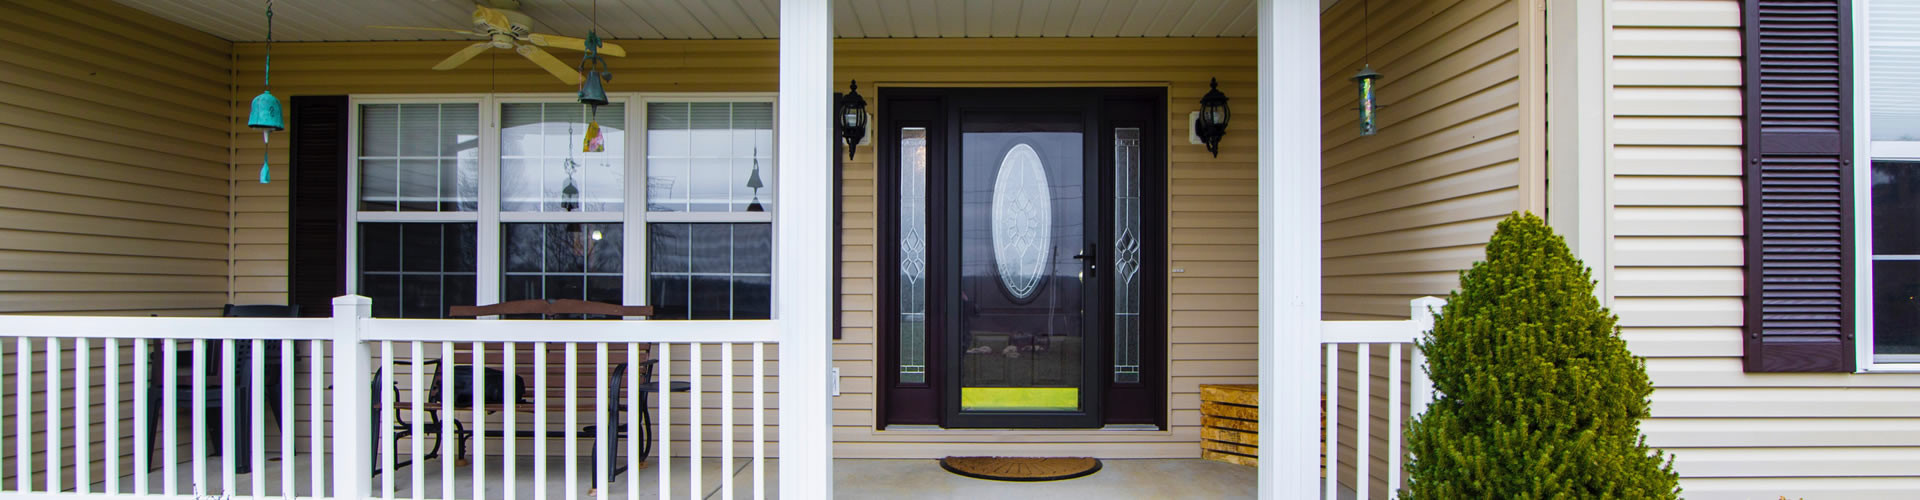 Home Exterior Windows Doors